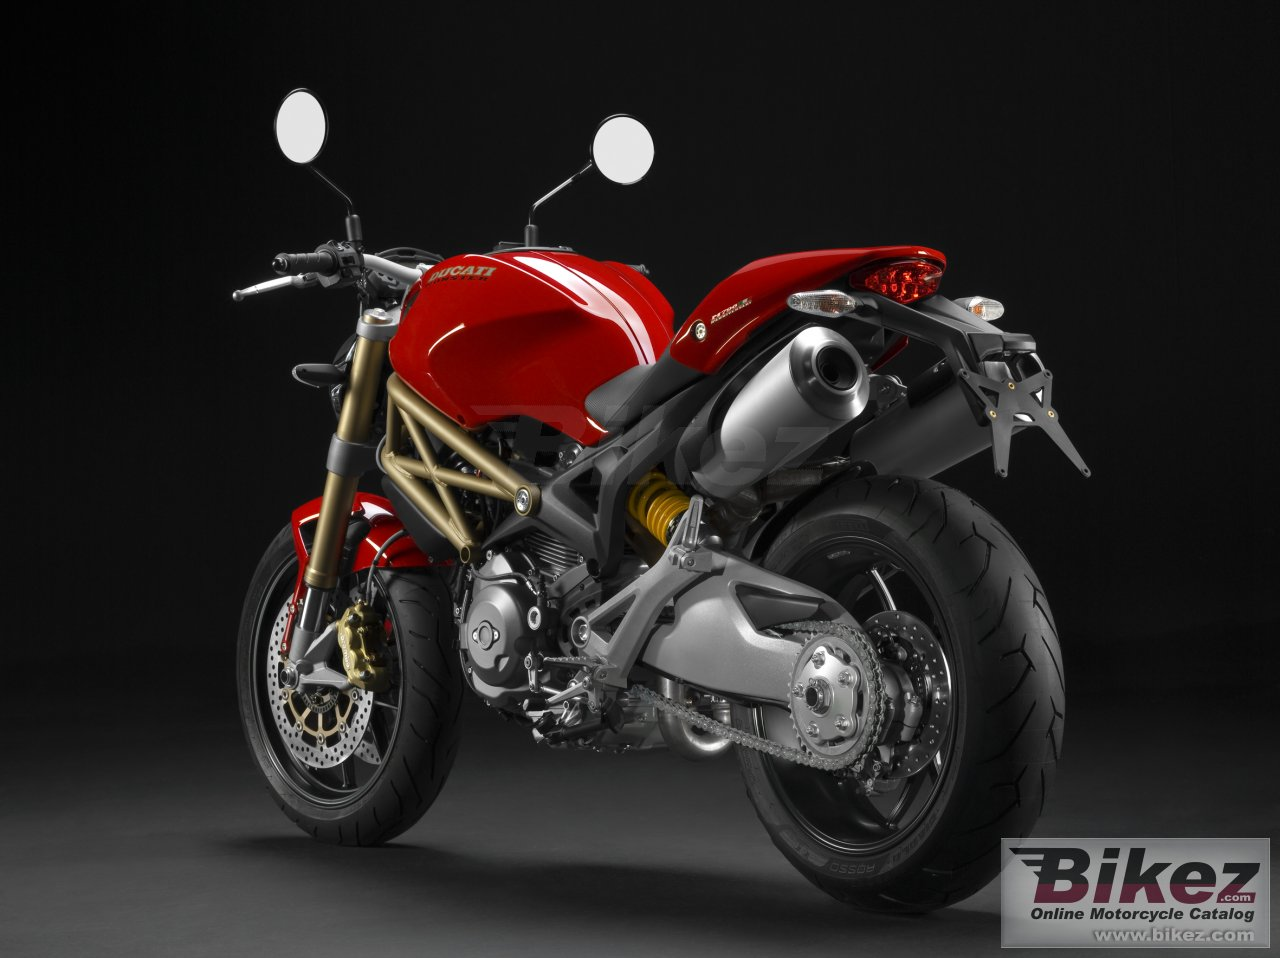 Ducati monster 796 20th anniversary